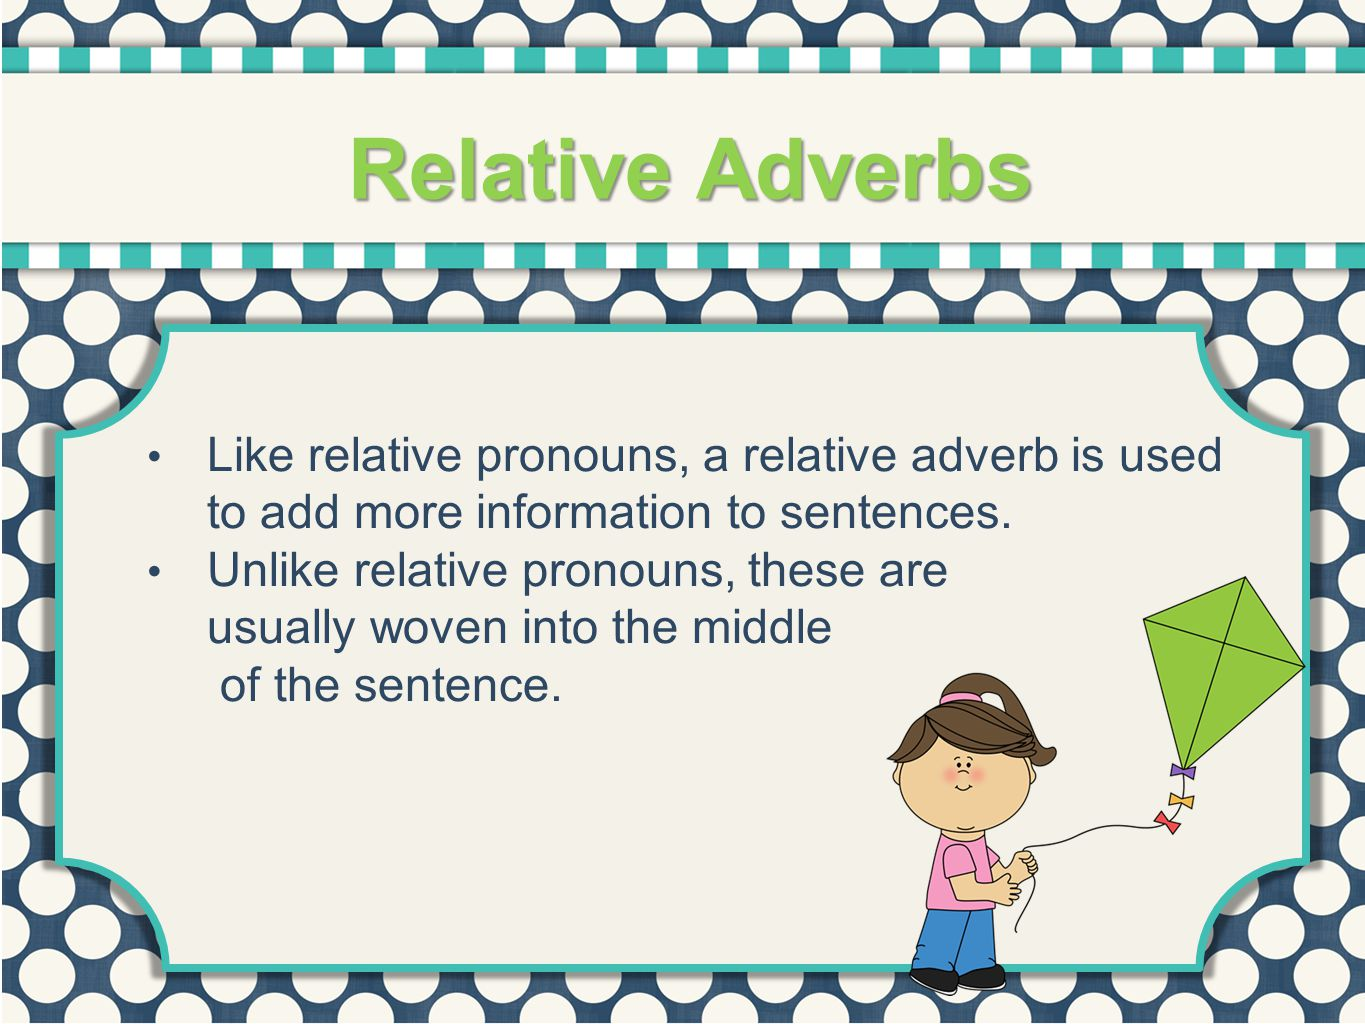 Like relative pronouns, a relative adverb is used to add more information to sentences. Unlike relative pronouns, these are usually woven into the mid